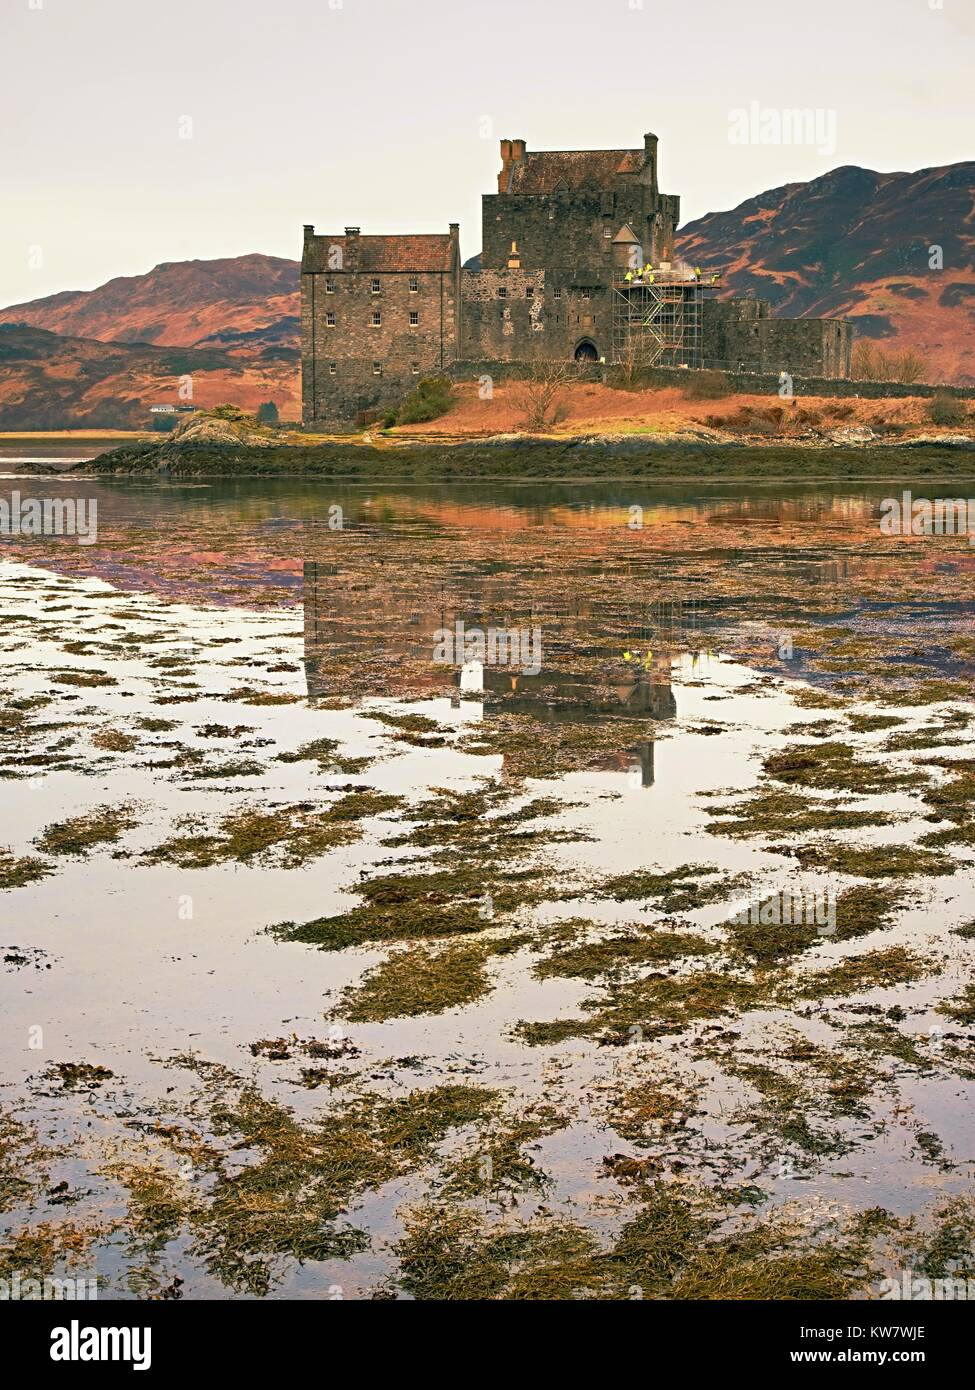 Tides in the lake at Eilean Donan Castle, Scotland. The popular stony bridge over the remnants of water with massive - Stock Image